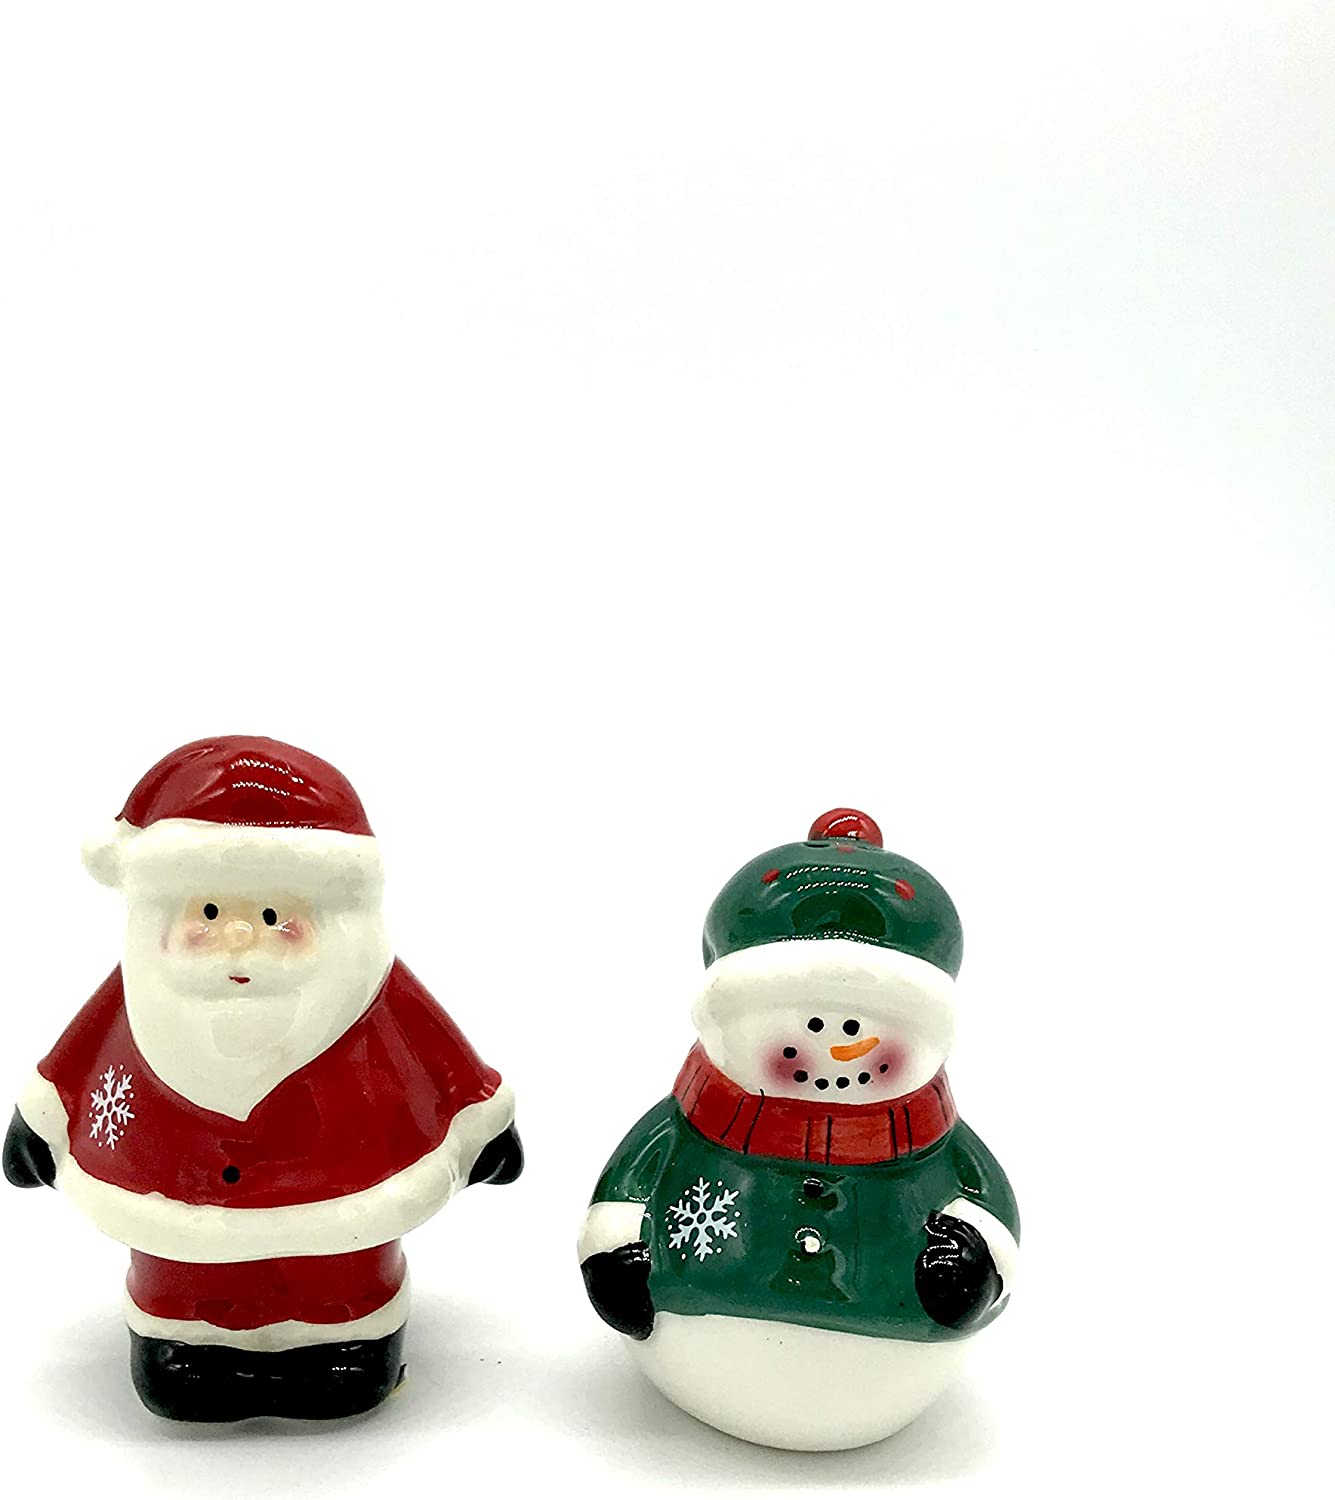 Snow Magic Santa and Snowman Pepper Our shop OFFers the best service Set Salt New Free Shipping Shaker